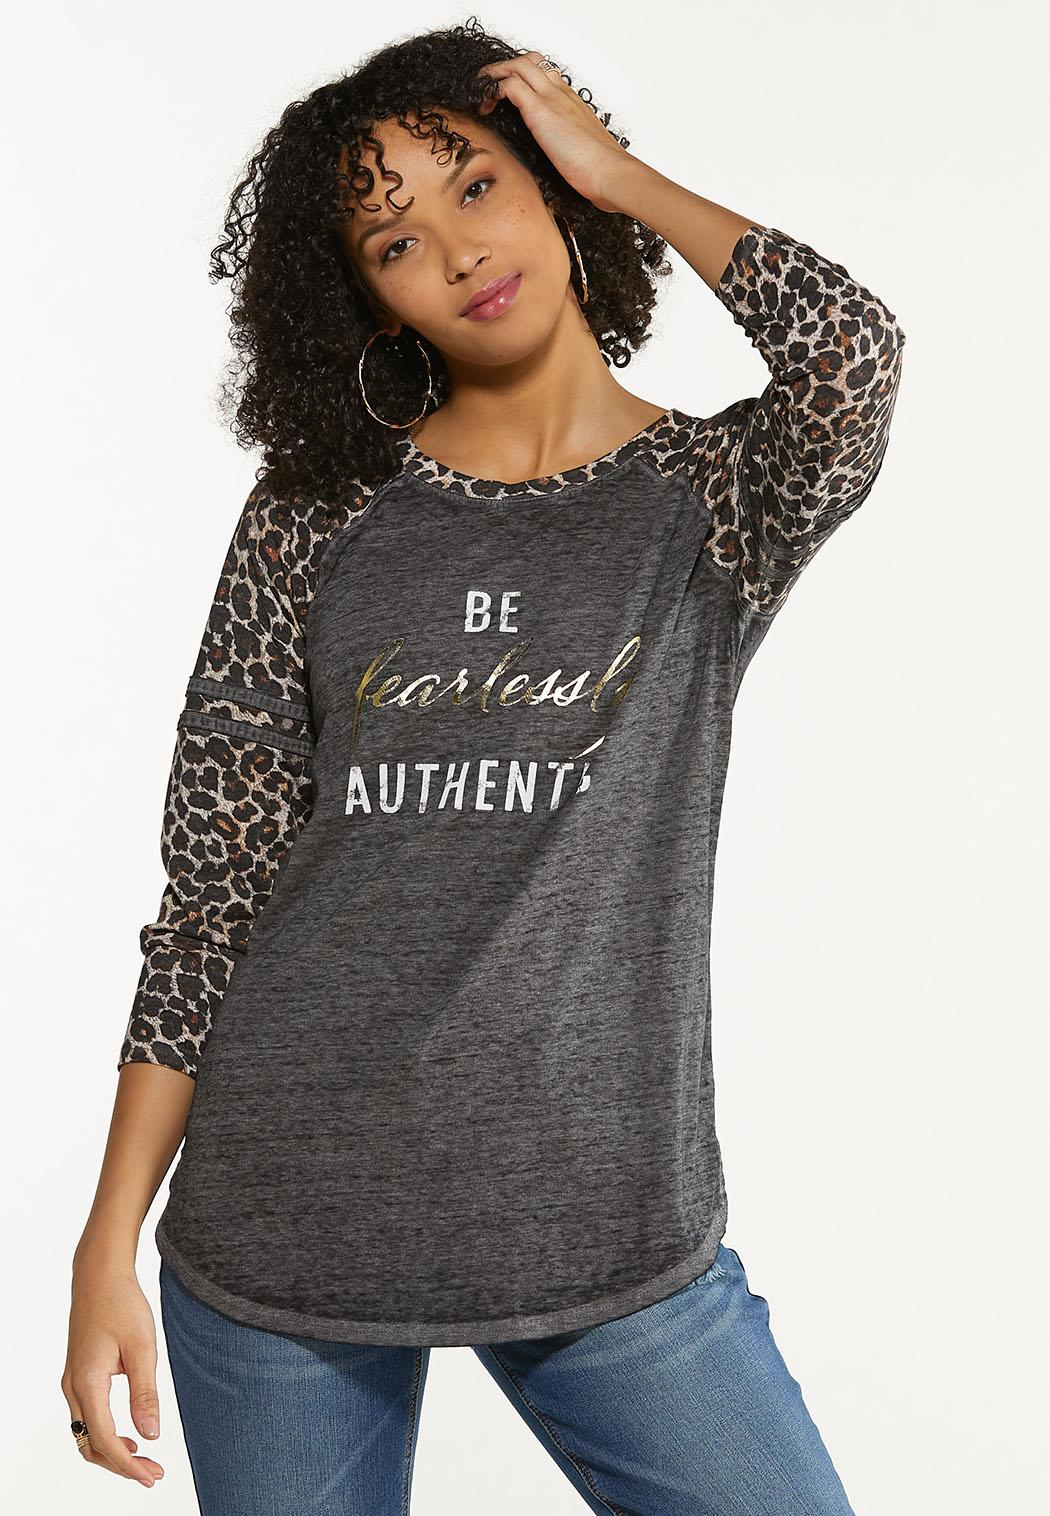 Fearlessly Authentic Top